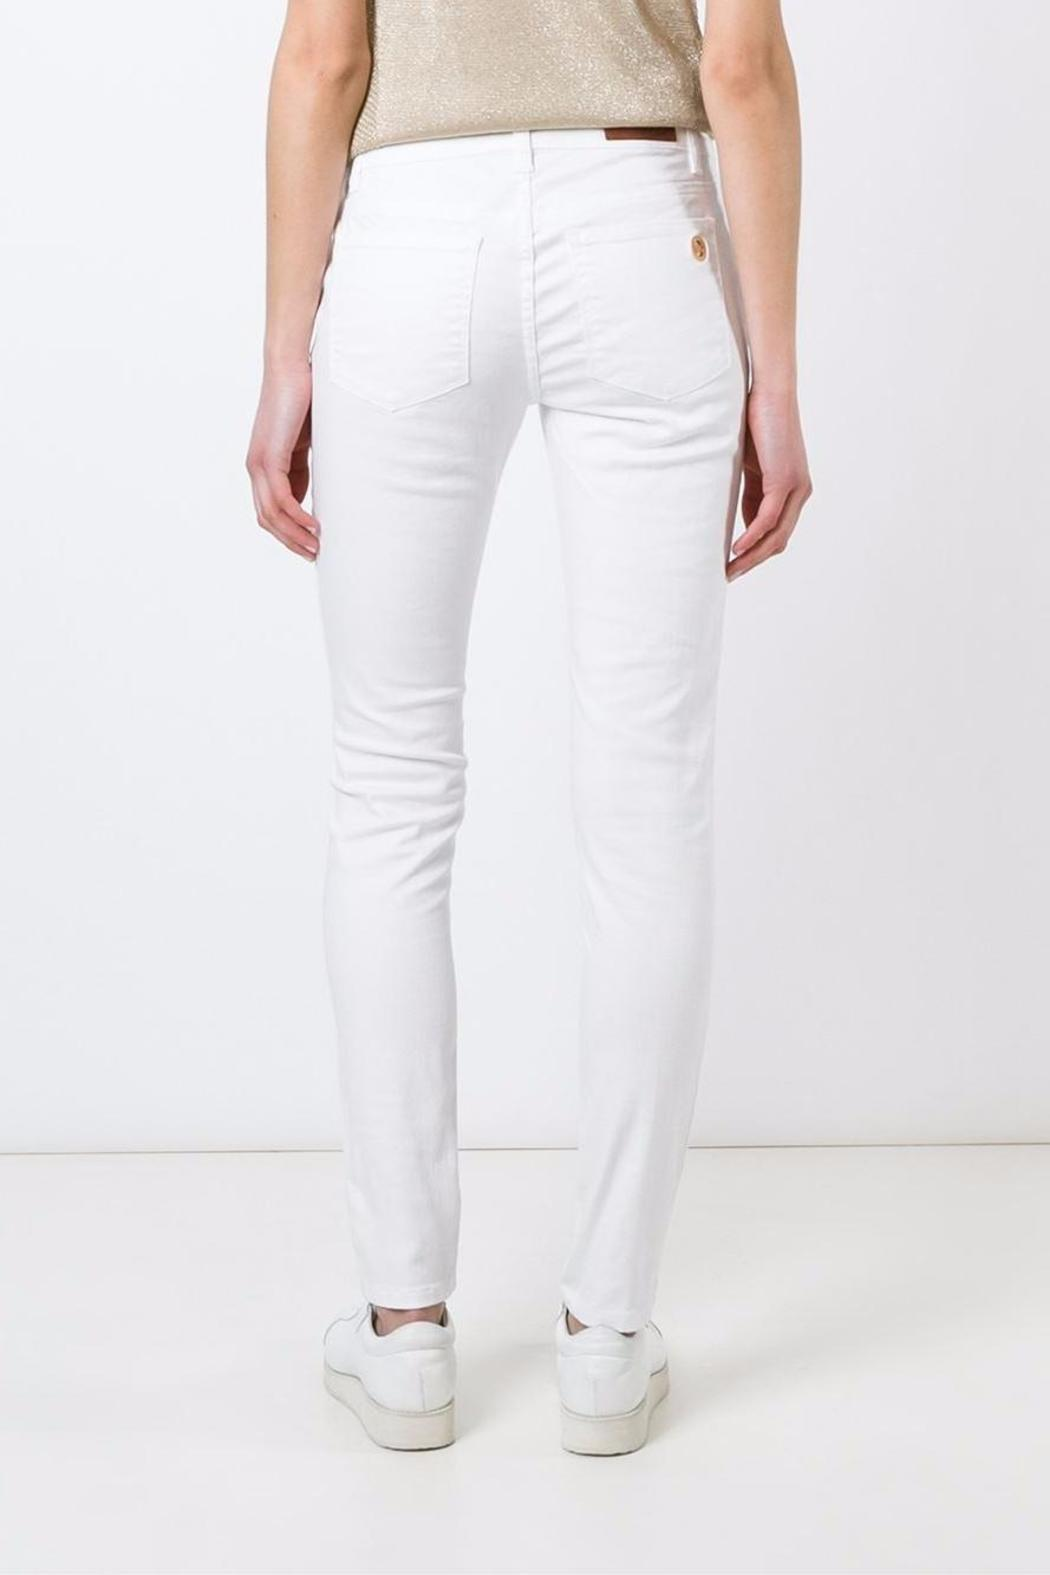 Michael by Michael Kors White-Skinny Mid-Rise - Back Cropped Image